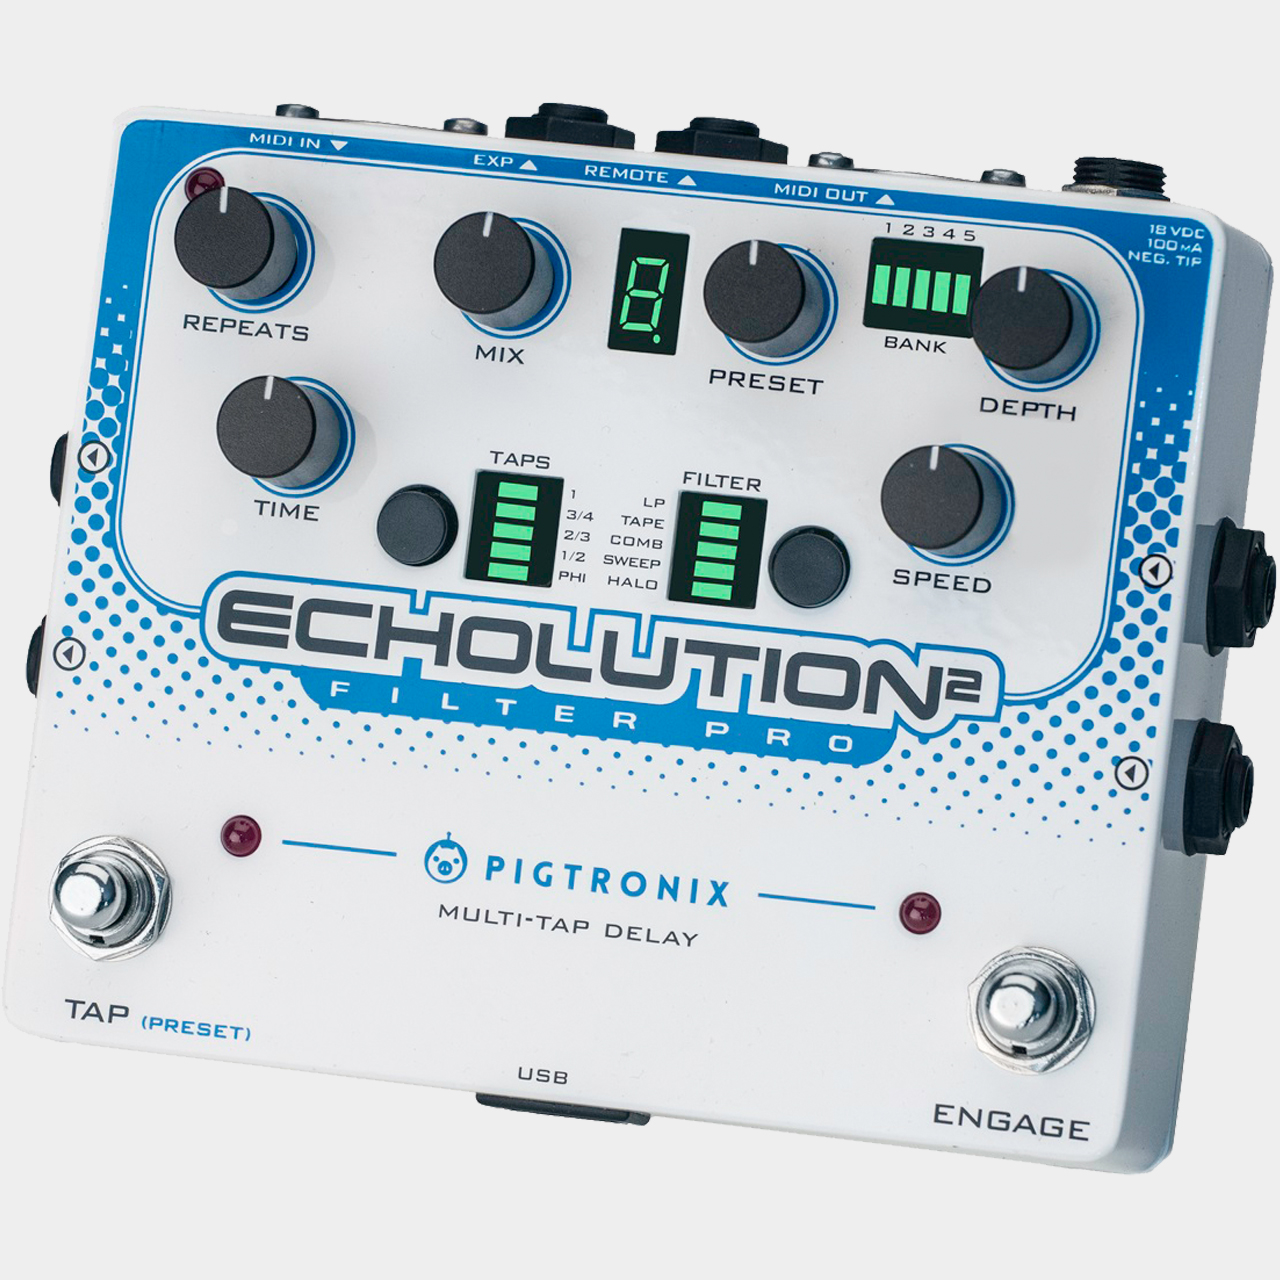 PIGTRONIX Echolution 2 Filter Pro